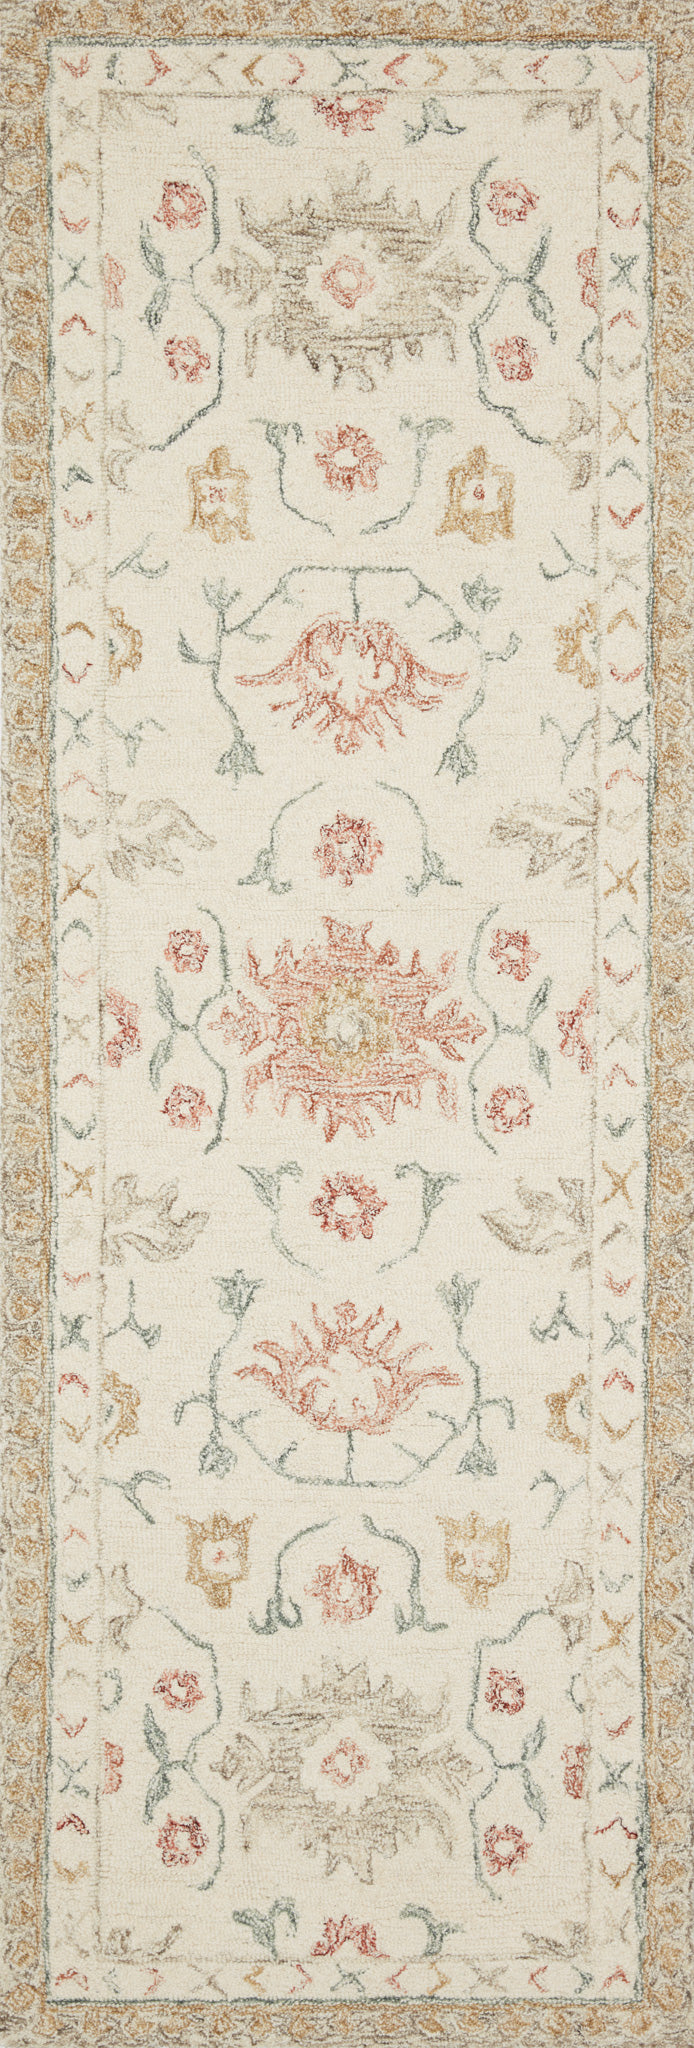 Loloi Norabel NOR-03 Ivory/Rust Area Rug main image